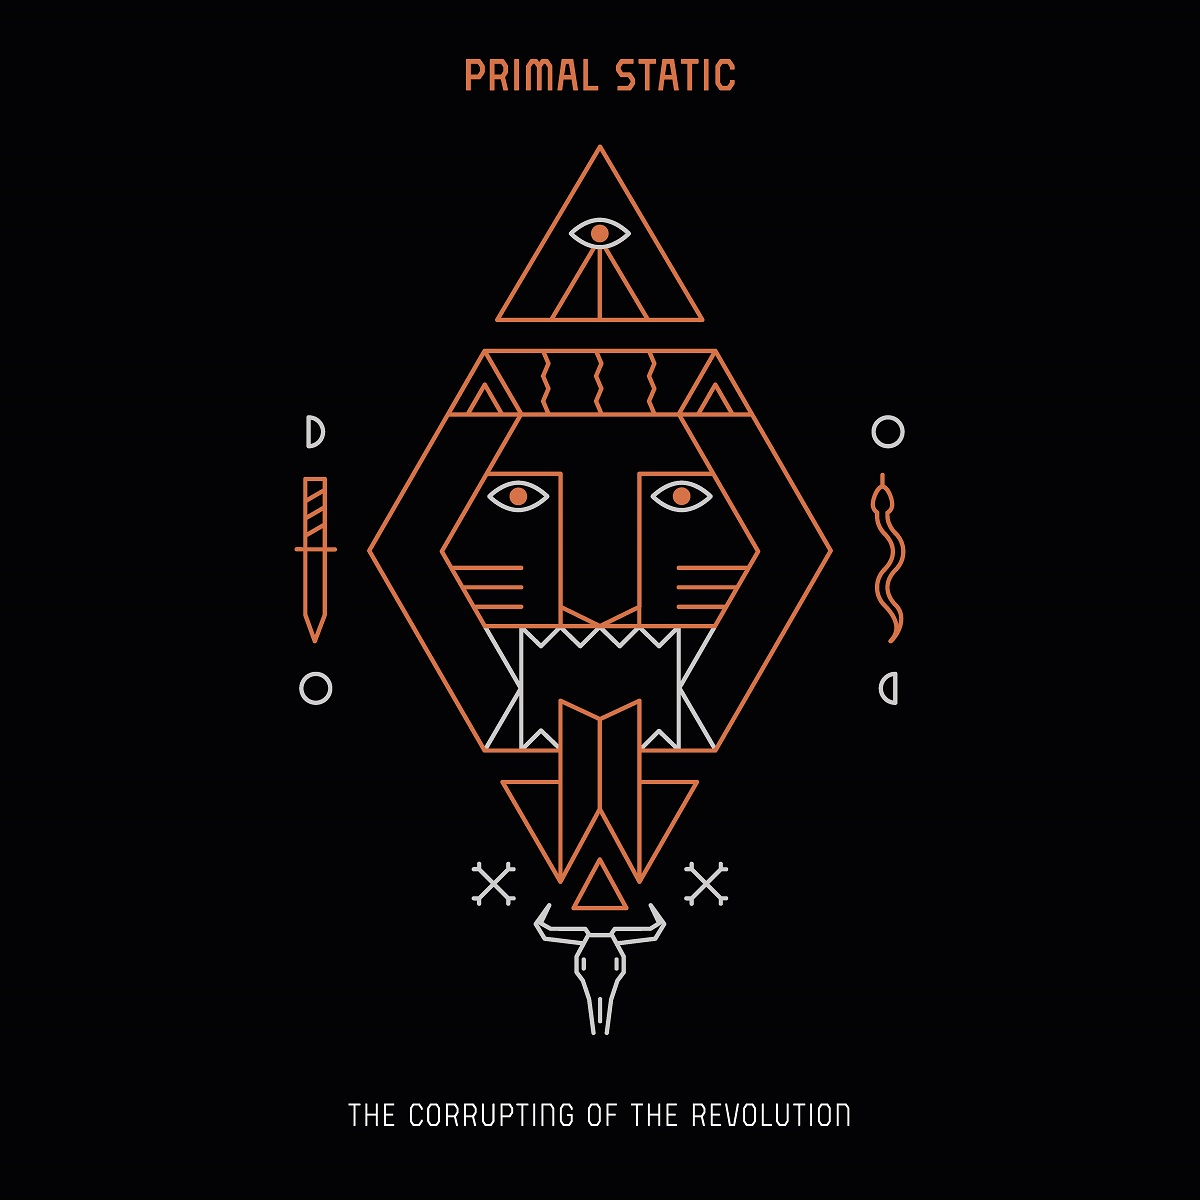 News: Exclusive – Listen To The New EP By Primal Static, The Corrupting of the Revolution